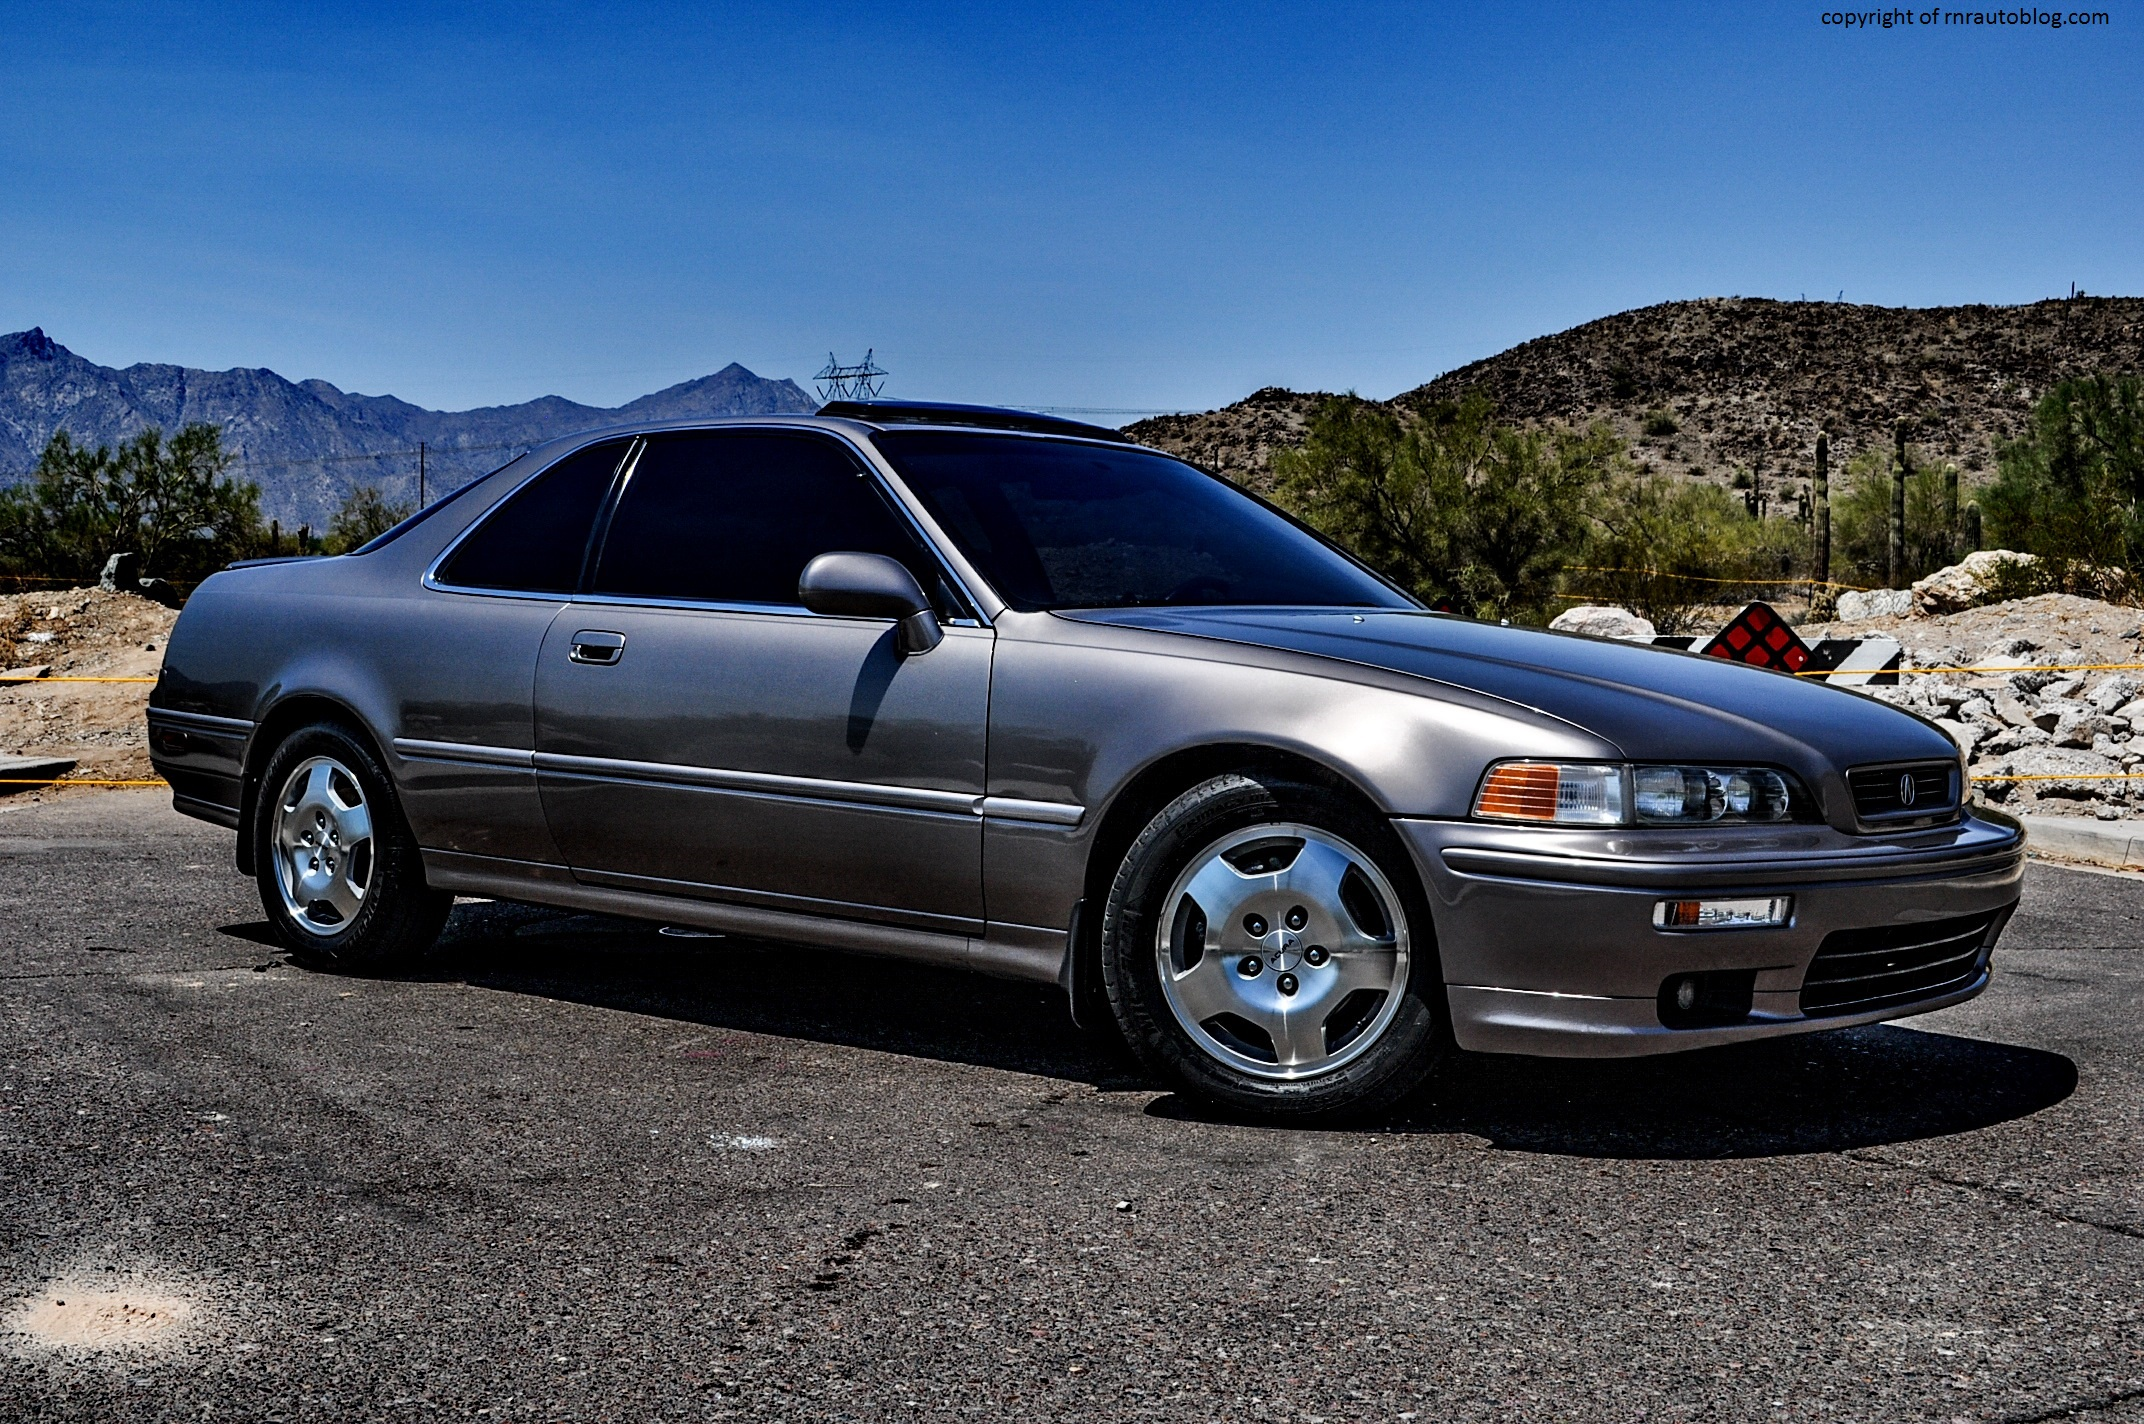 1994 acura legend ls coupe and gs sedan review rnr automotive blog. Black Bedroom Furniture Sets. Home Design Ideas